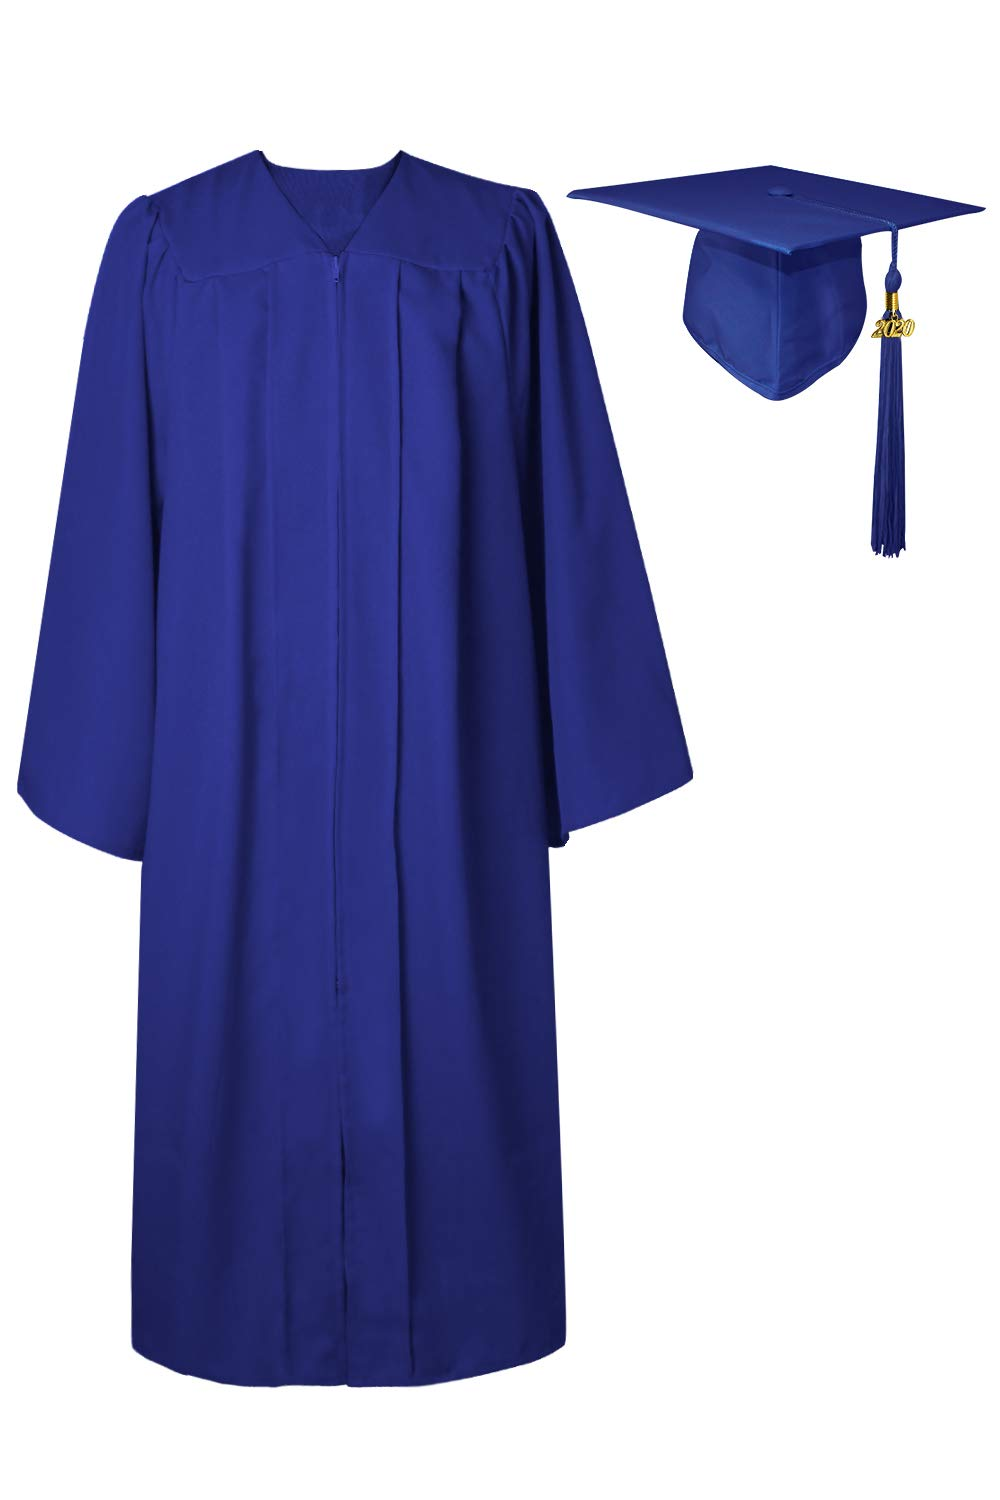 GraduatePro Matte Cap and Gown Graduation 2020 Adults with Tassel Year Charm for High School & Bachelor 12 Colors